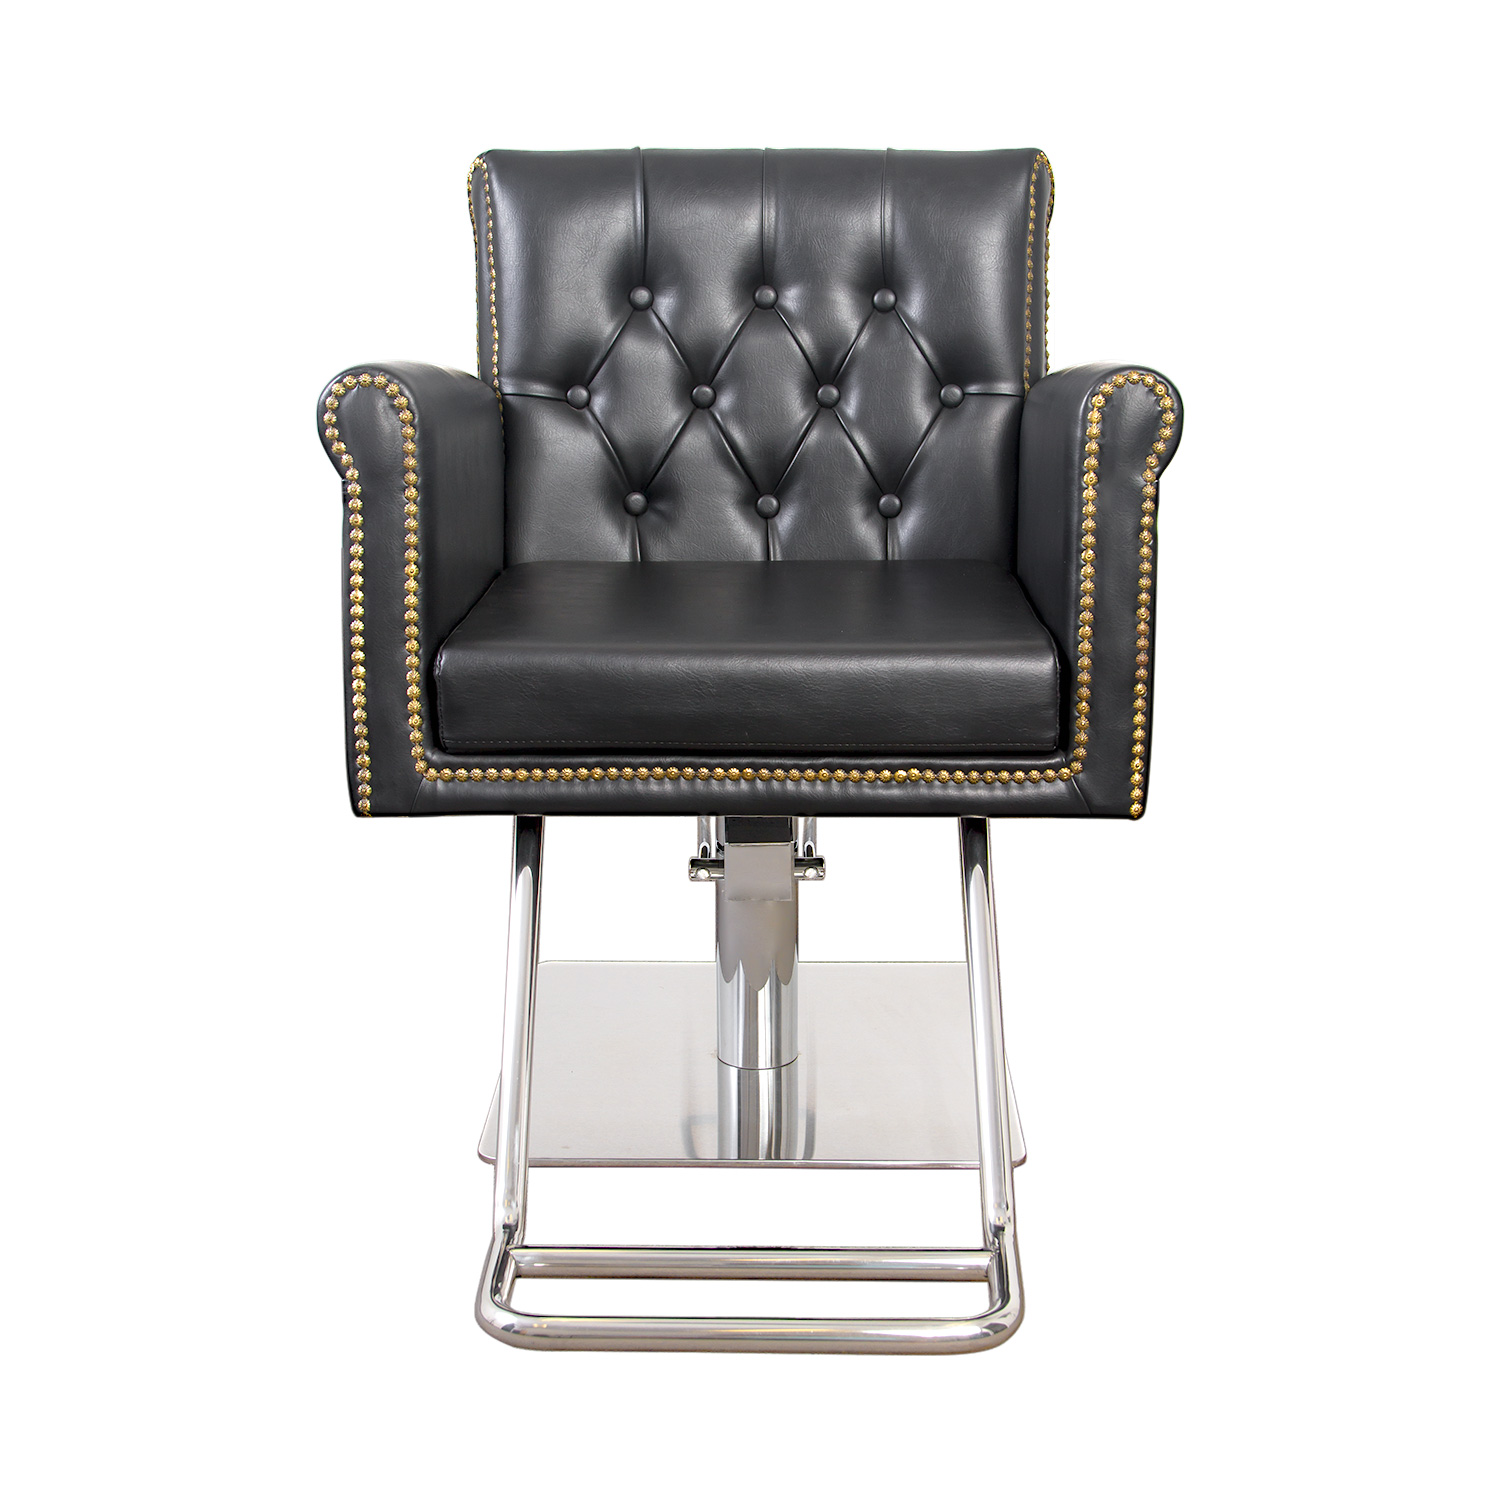 Winston Hair Chair with Nailhead Trim and Tufting alternative product image 1